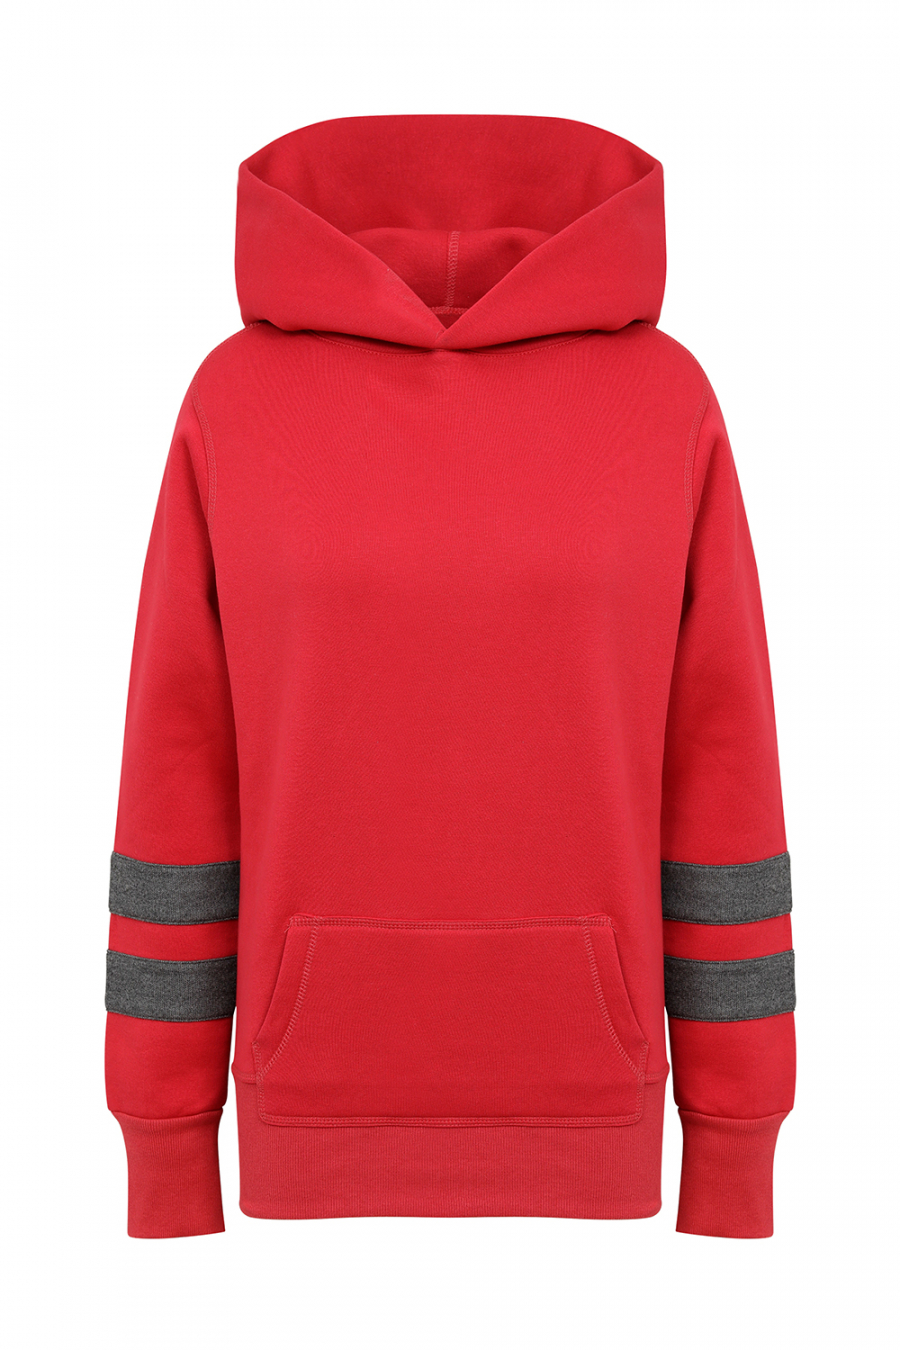 Mr Leo Red Sweatshirt